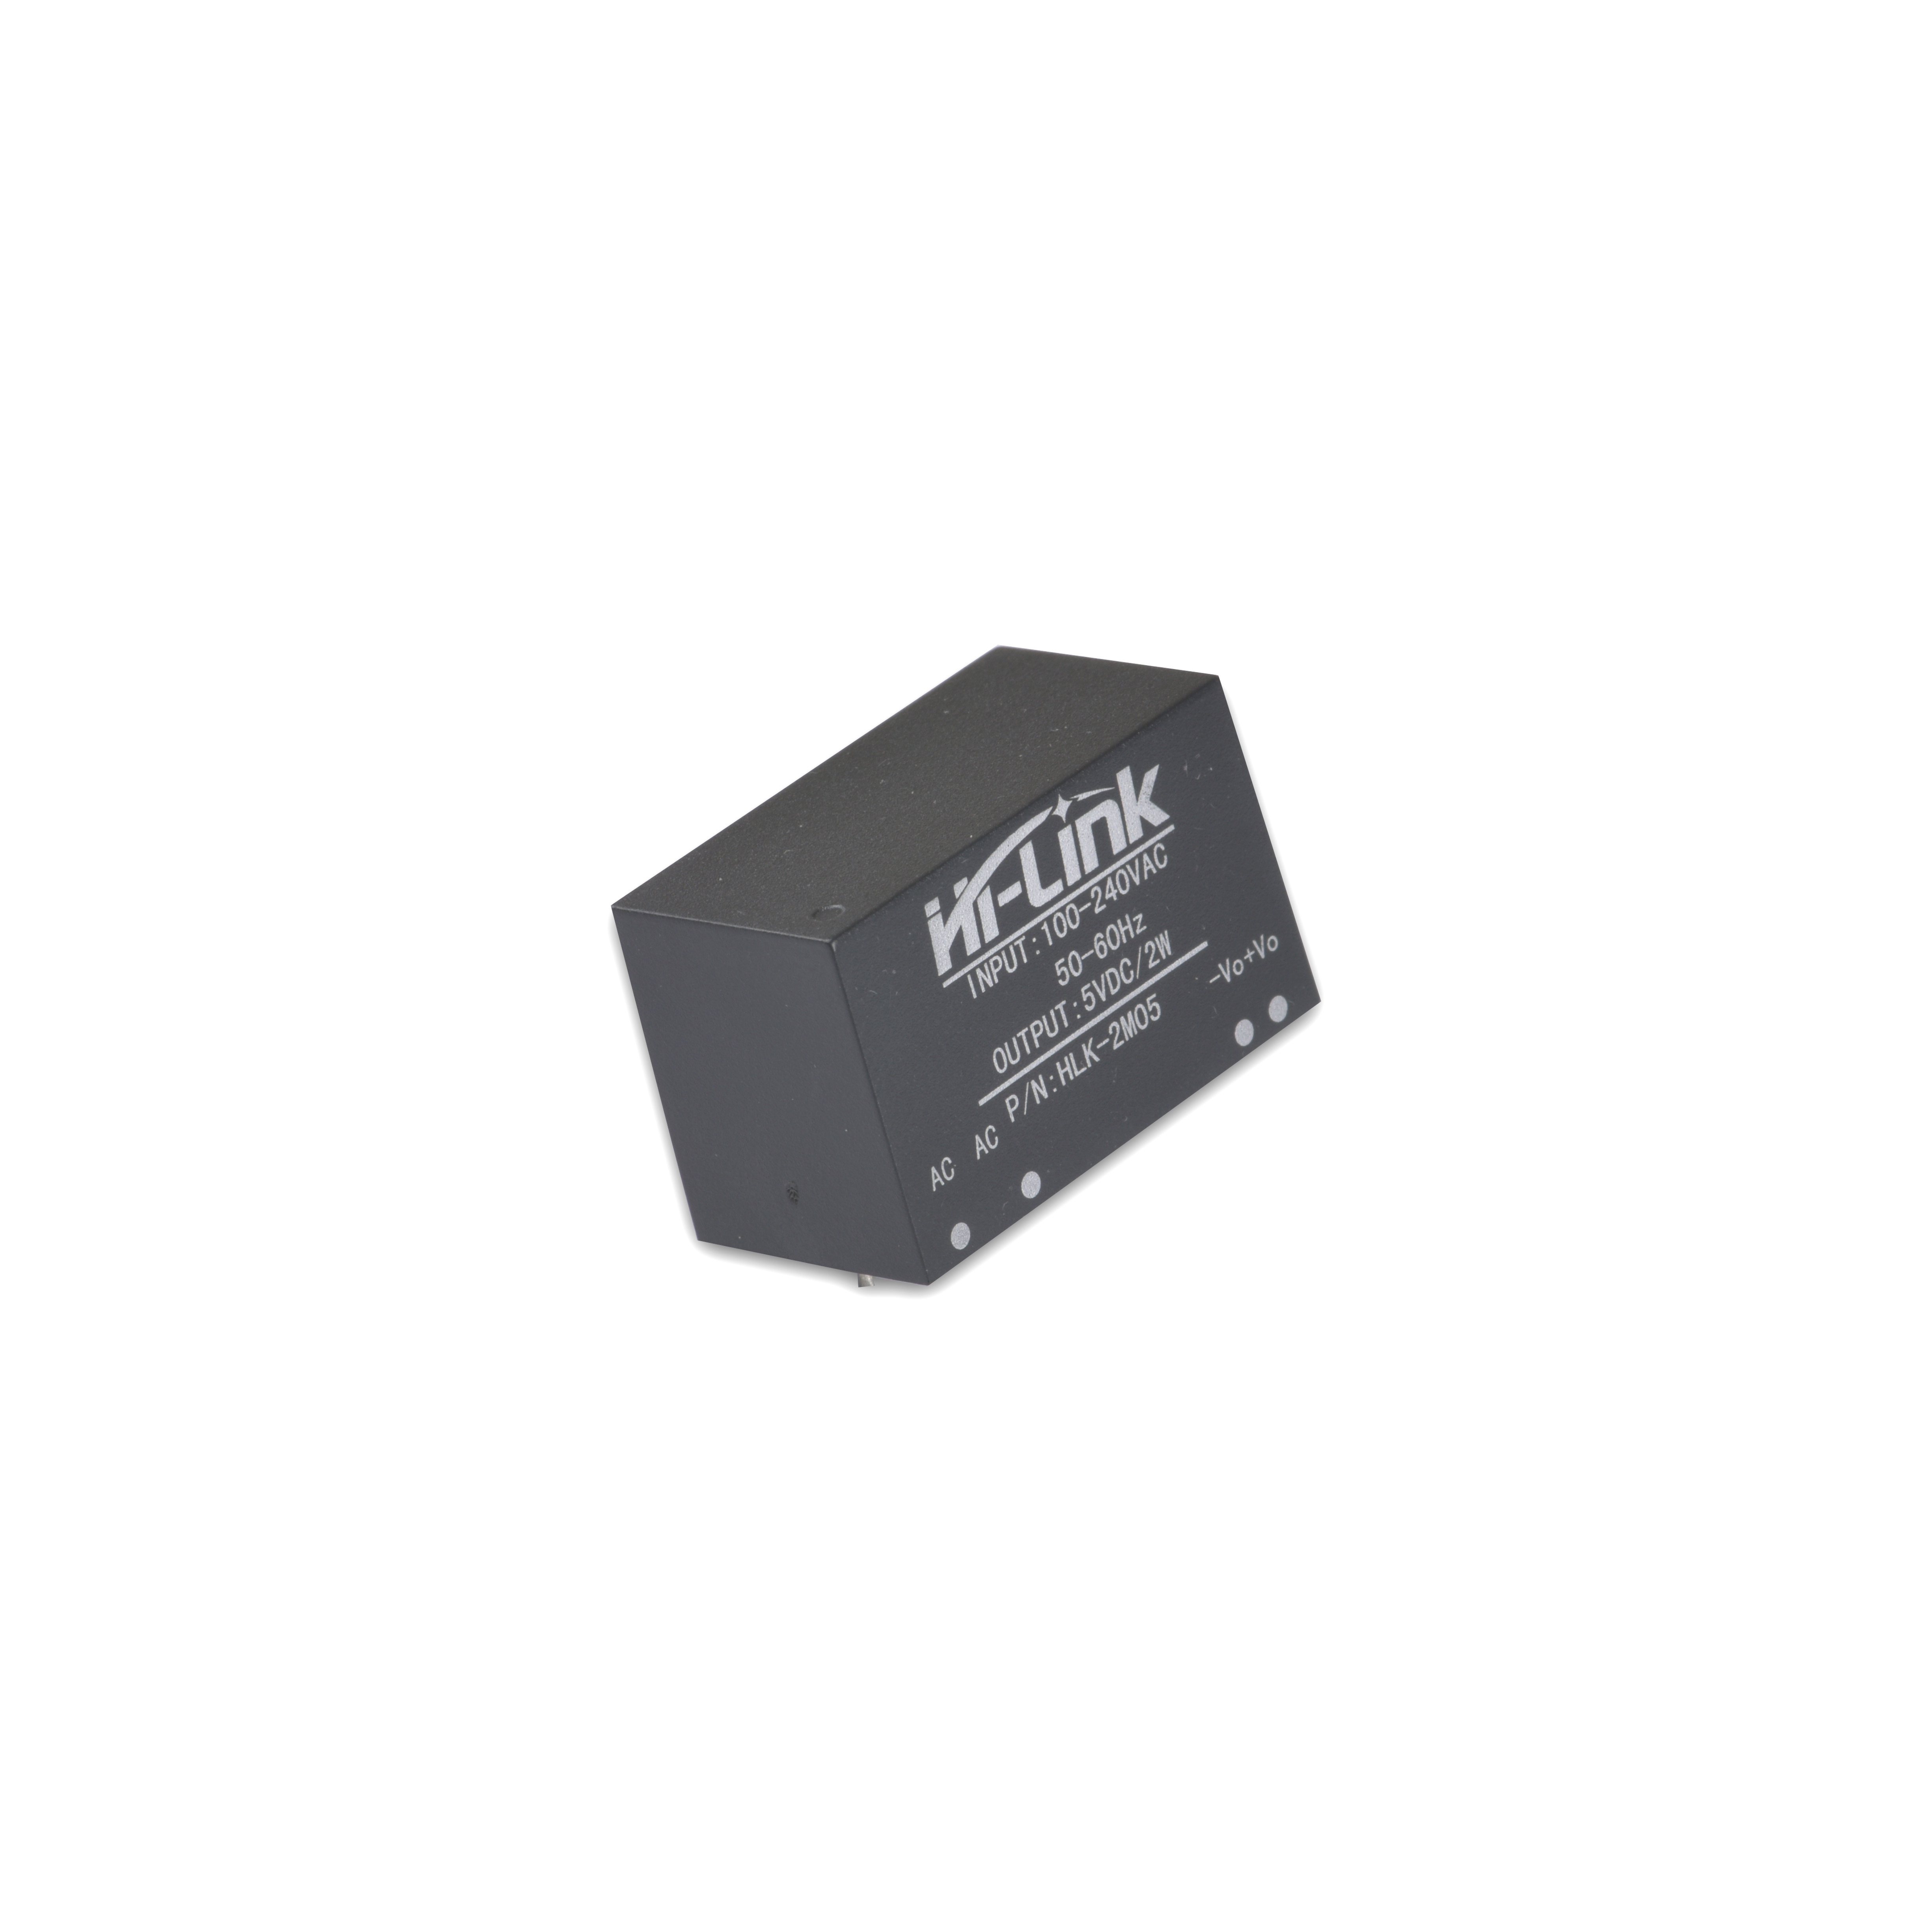 hlk 2m05 CE standard ac dc step down power converter 220V to 5v isolated